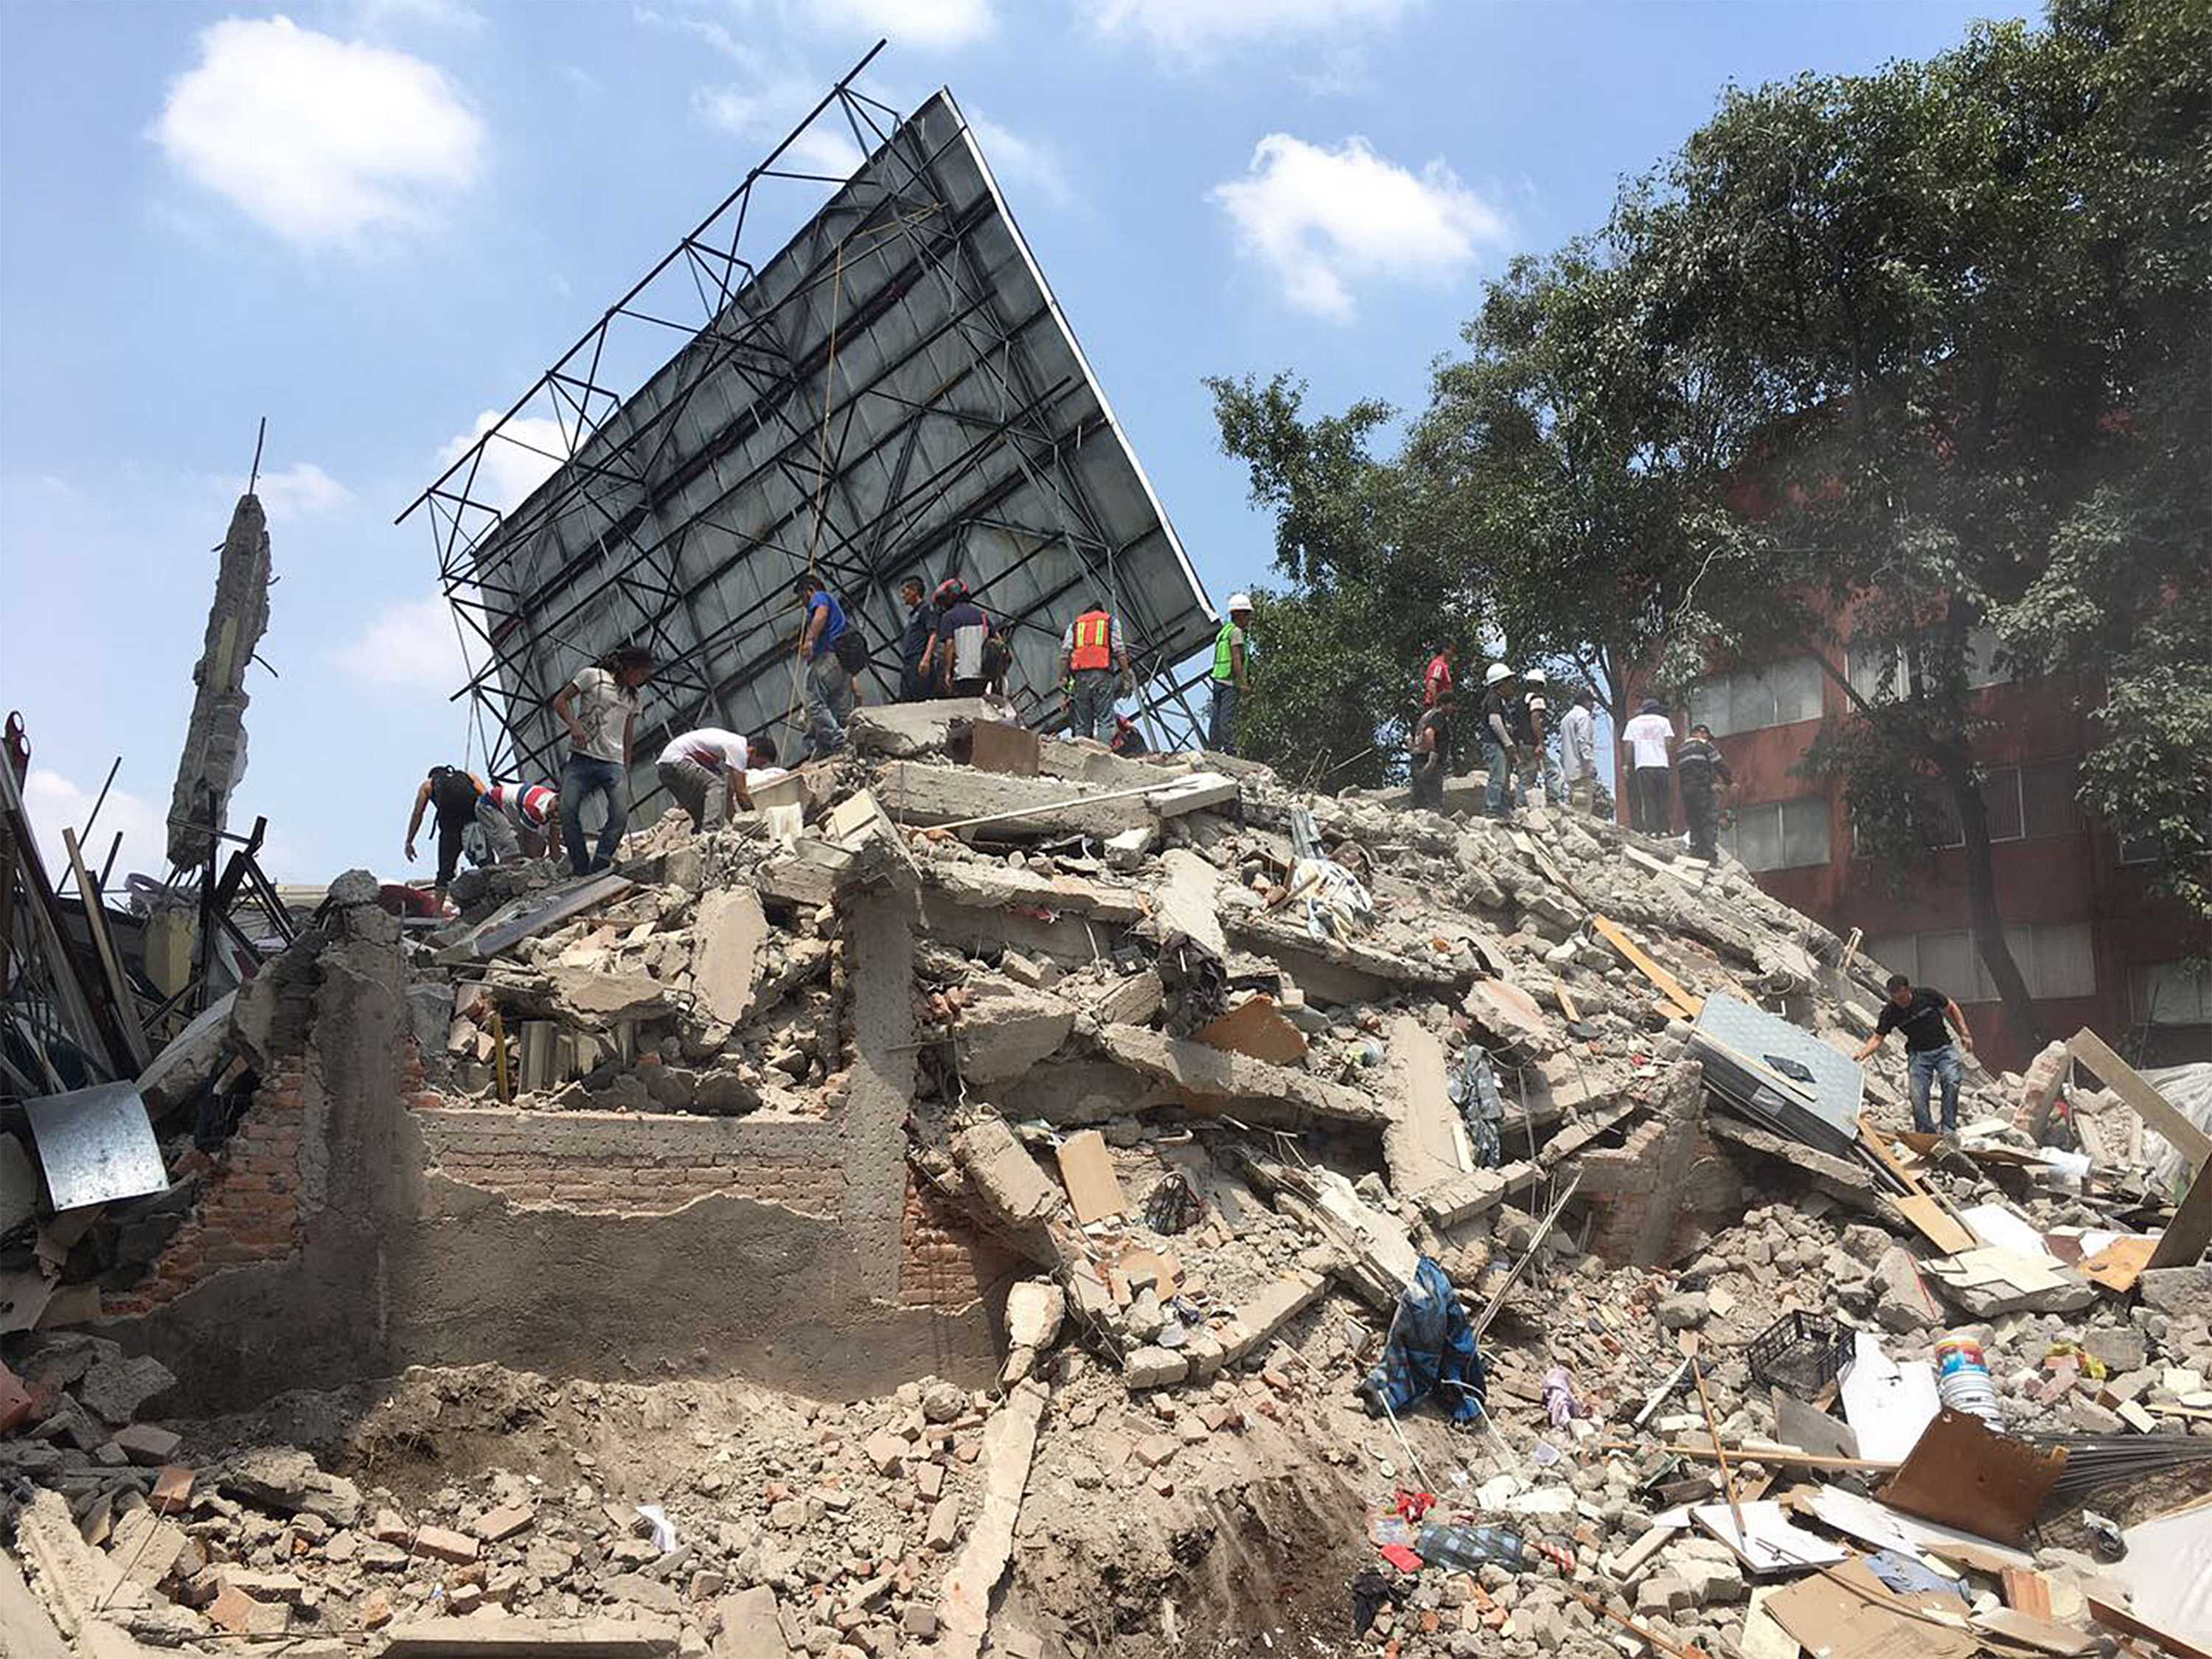 A powerful 7.1 earthquake struck Mexico City on Tuesday, Sept. 19, 2017, collapsing buildings and sending thousands fleeing into streets exactly 32 years on the anniversary of the 1985 devestating earthquake. (Prensa Internacional/Zuma Press/TNS)